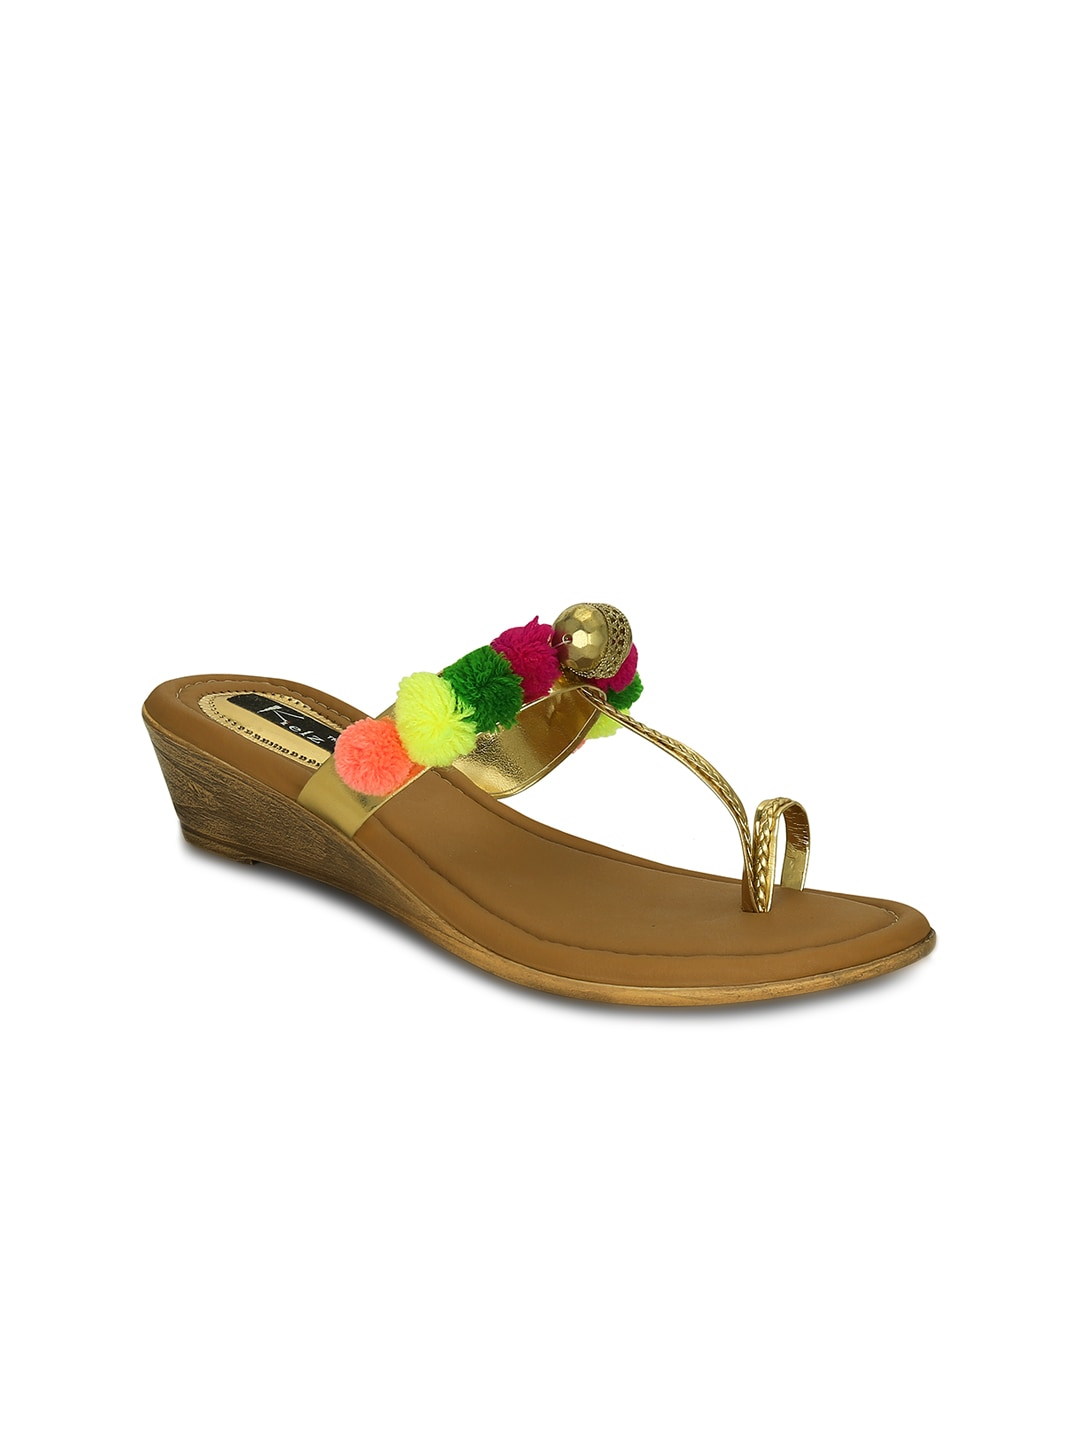 9468bdefdfa5 Wedges Shoes Flats - Buy Wedges Shoes Flats online in India